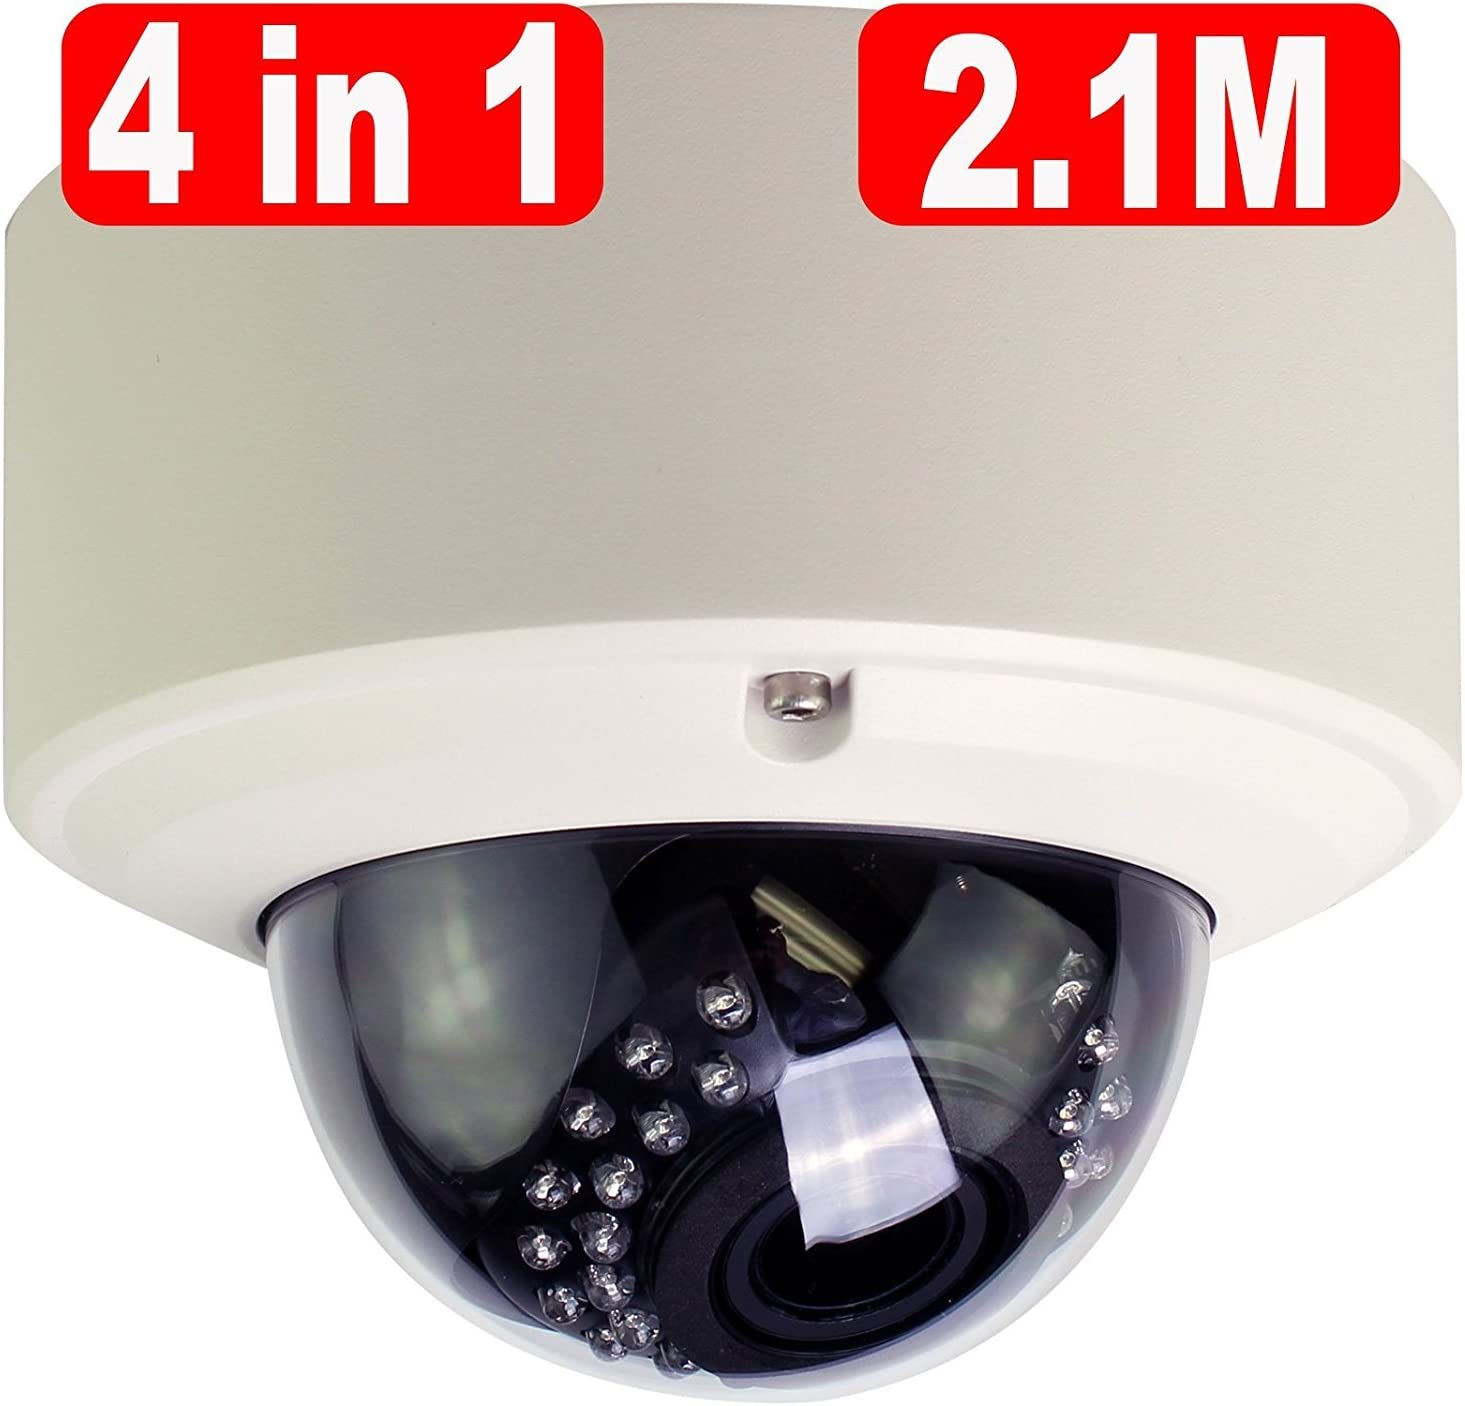 GW Security 32CH HD 1080p DVR Security System, QR-Code Connection, 32 Day Night 1920TVL High Resolution Weatherproof Dome Cameras CCTV Surveillance System 8TB Hard Drive Up to 32TB